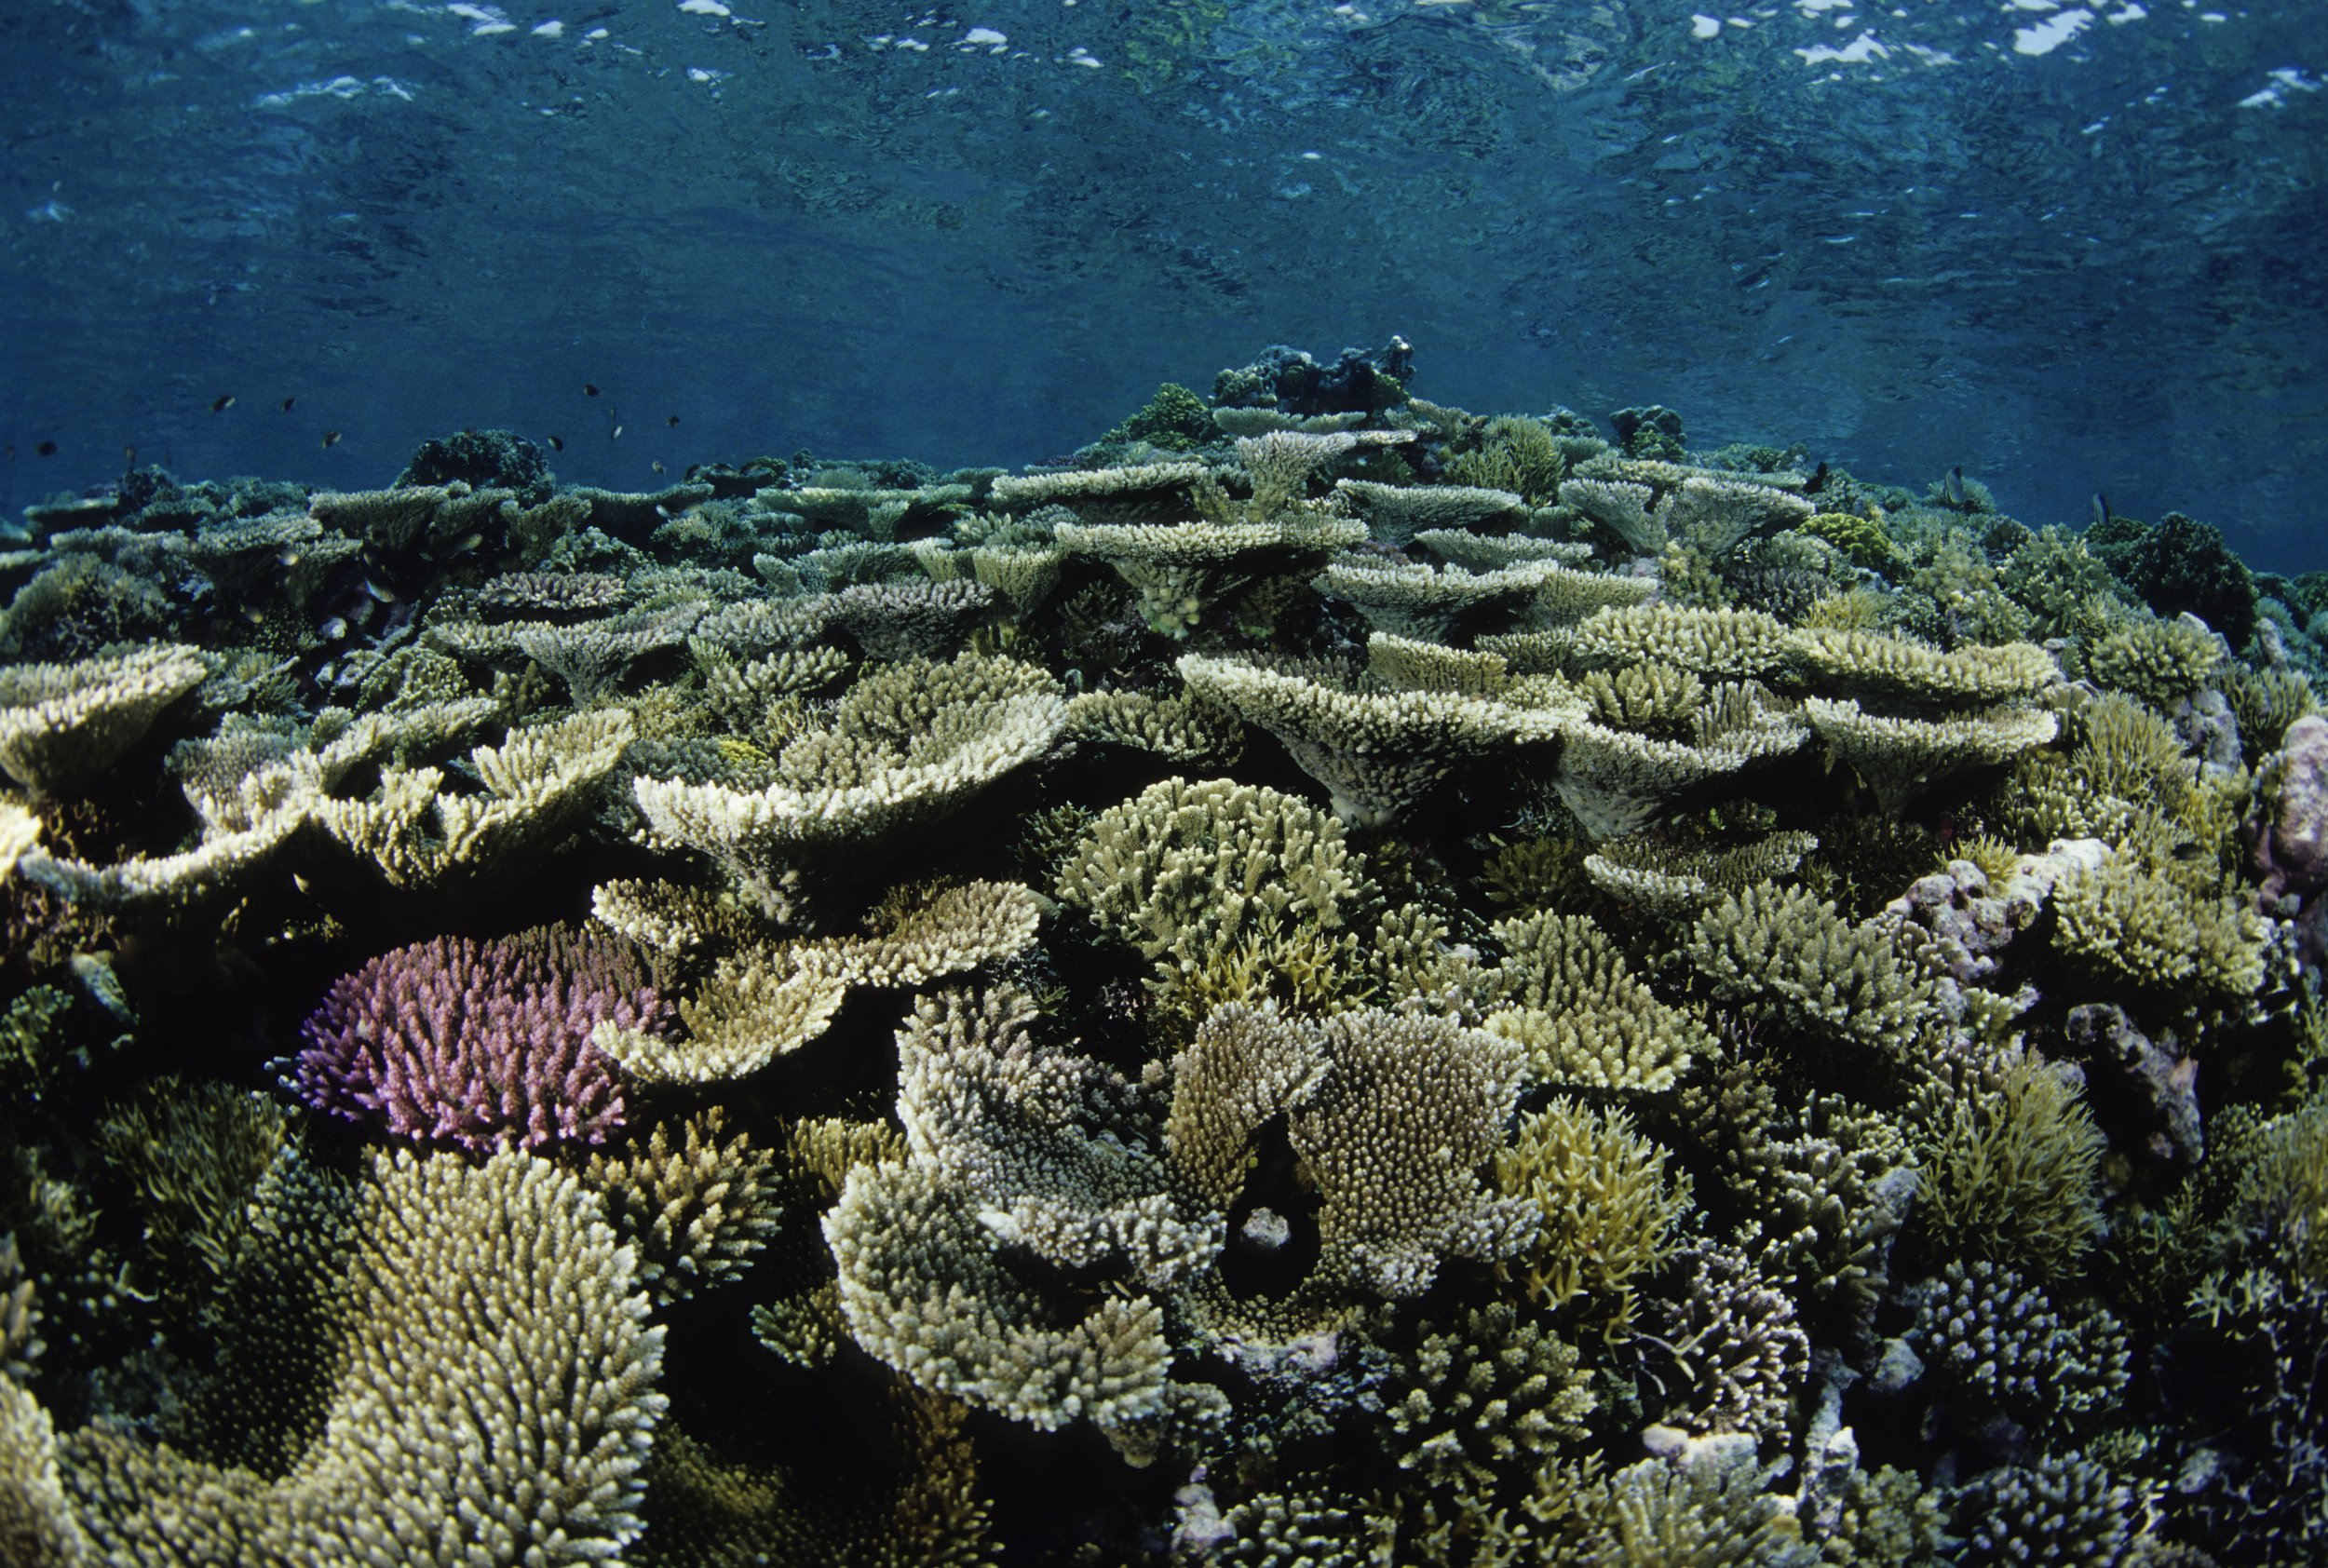 Magical hard coral reef showing signs of minor coral bleaching.